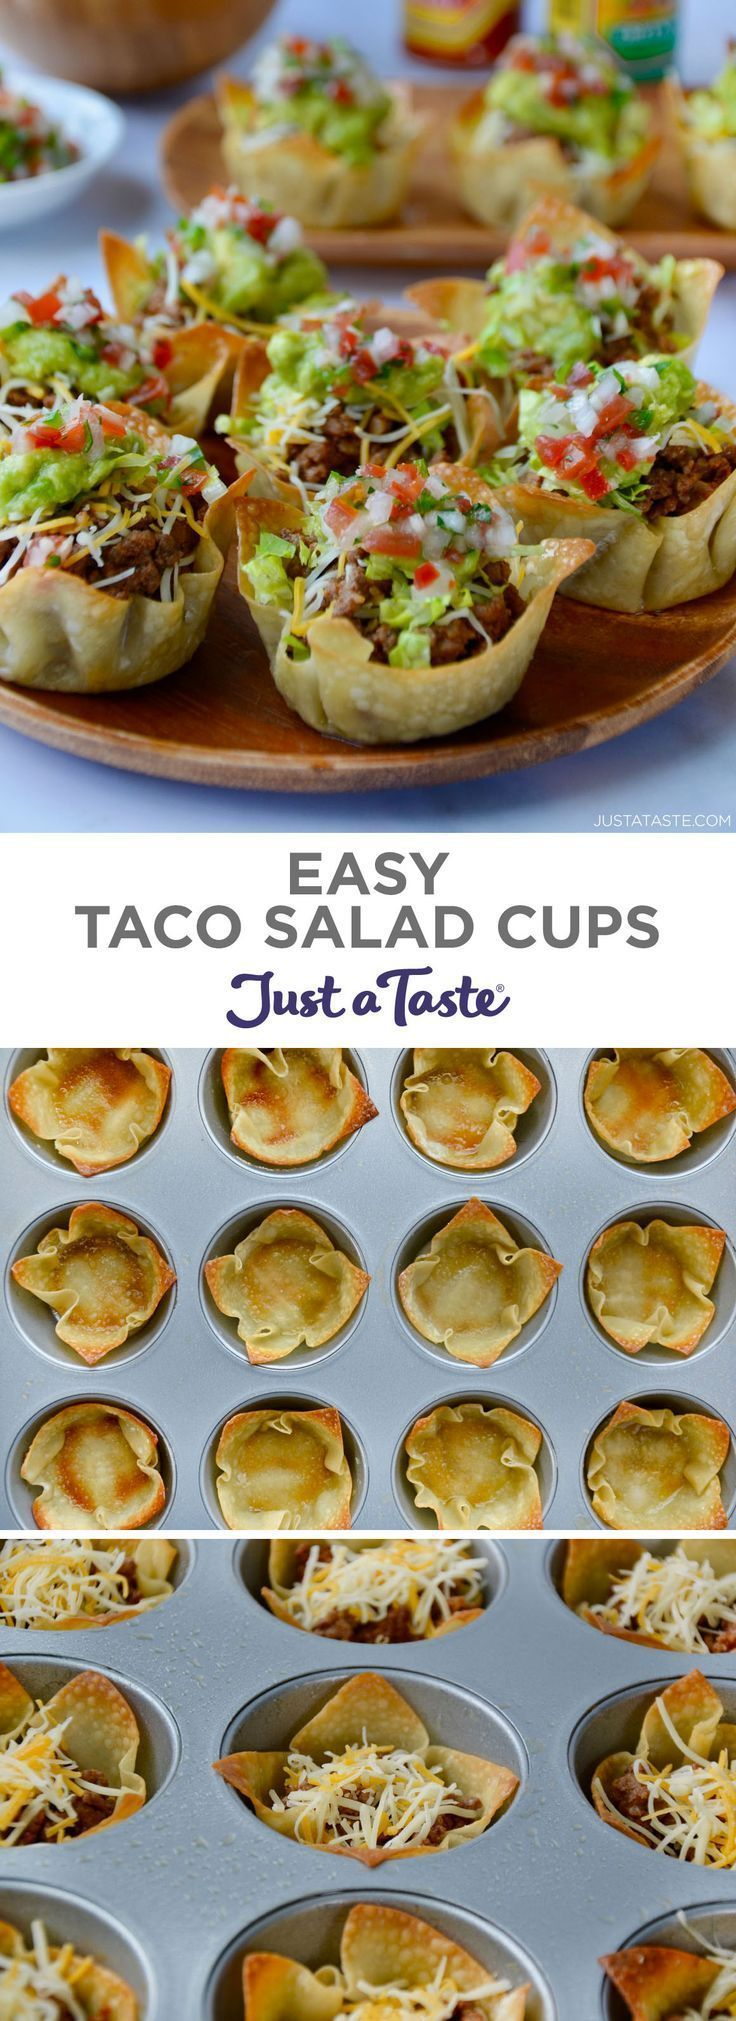 Easy Taco Salad Cups | Just a Taste